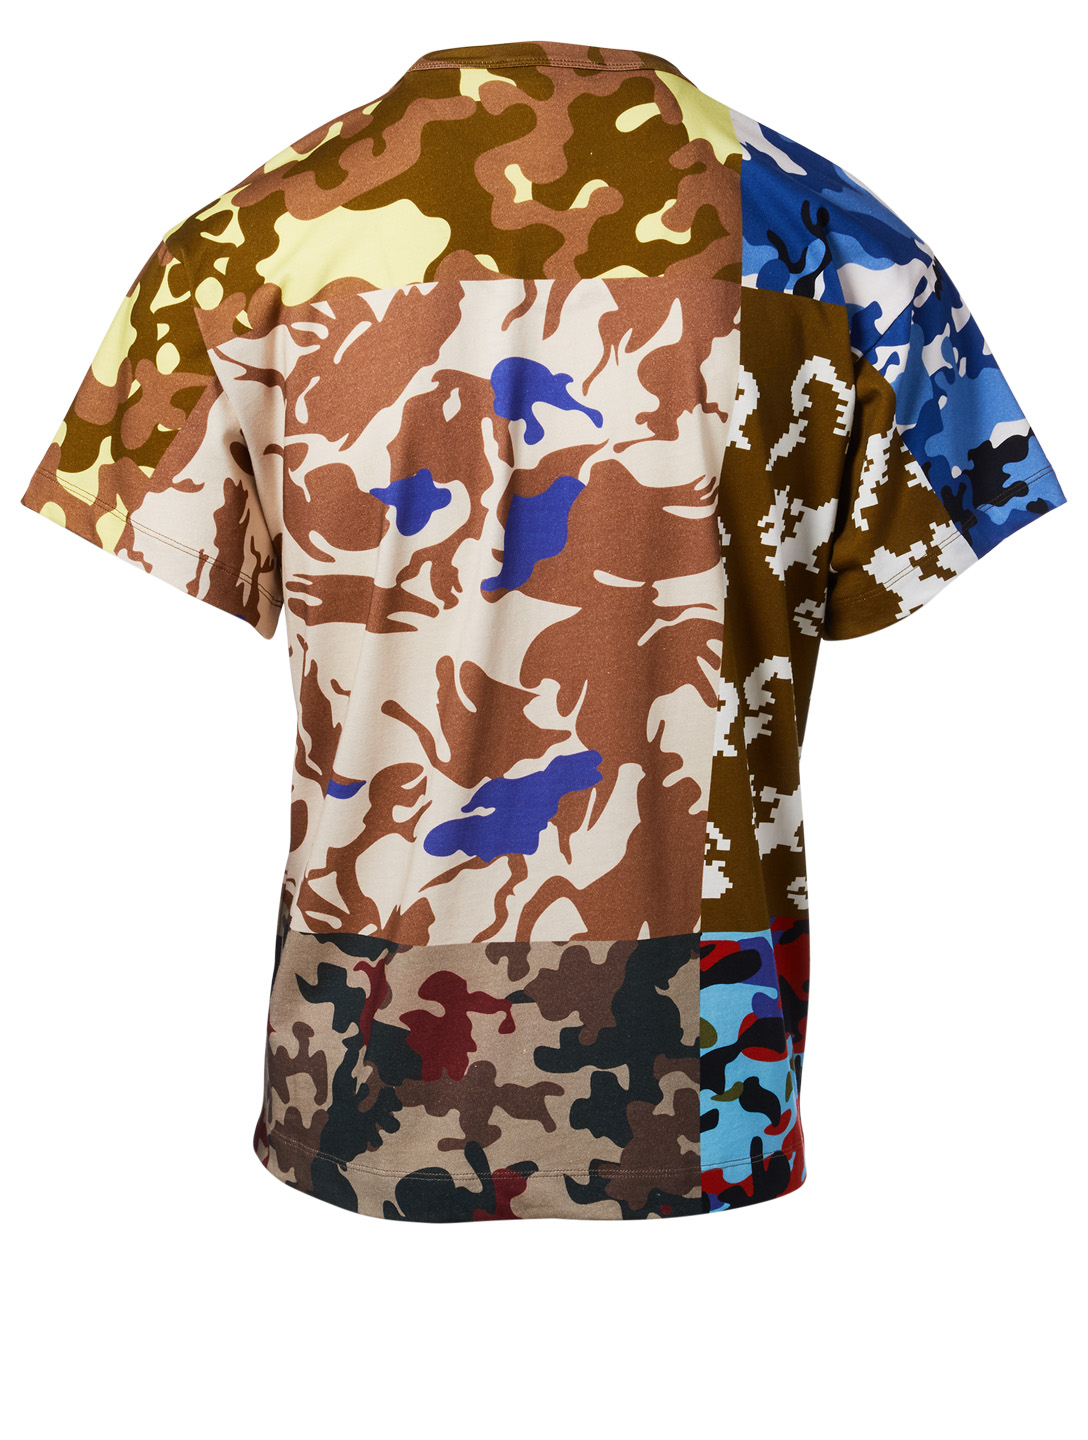 GOSHA Cotton Camo T-Shirt Men's Multi